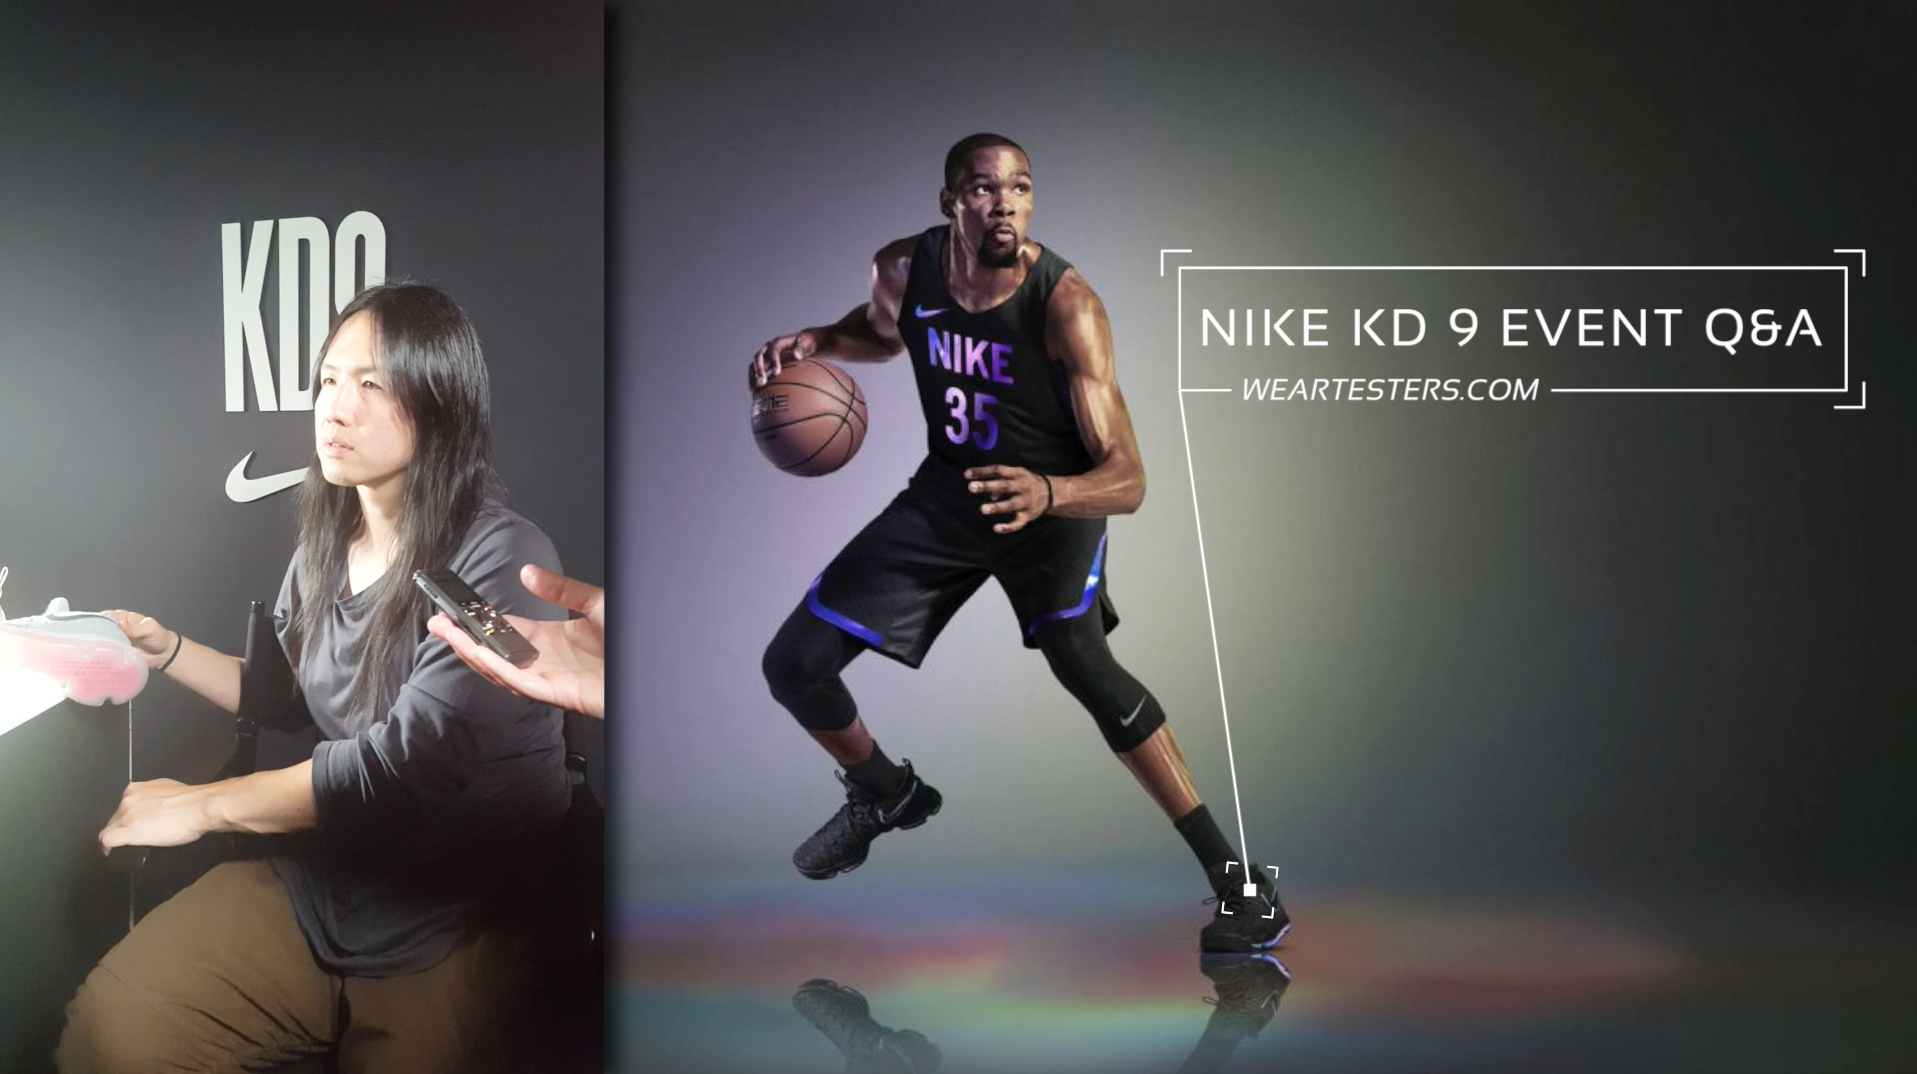 Interview the Nike KD 9 with Designer Leo Chang